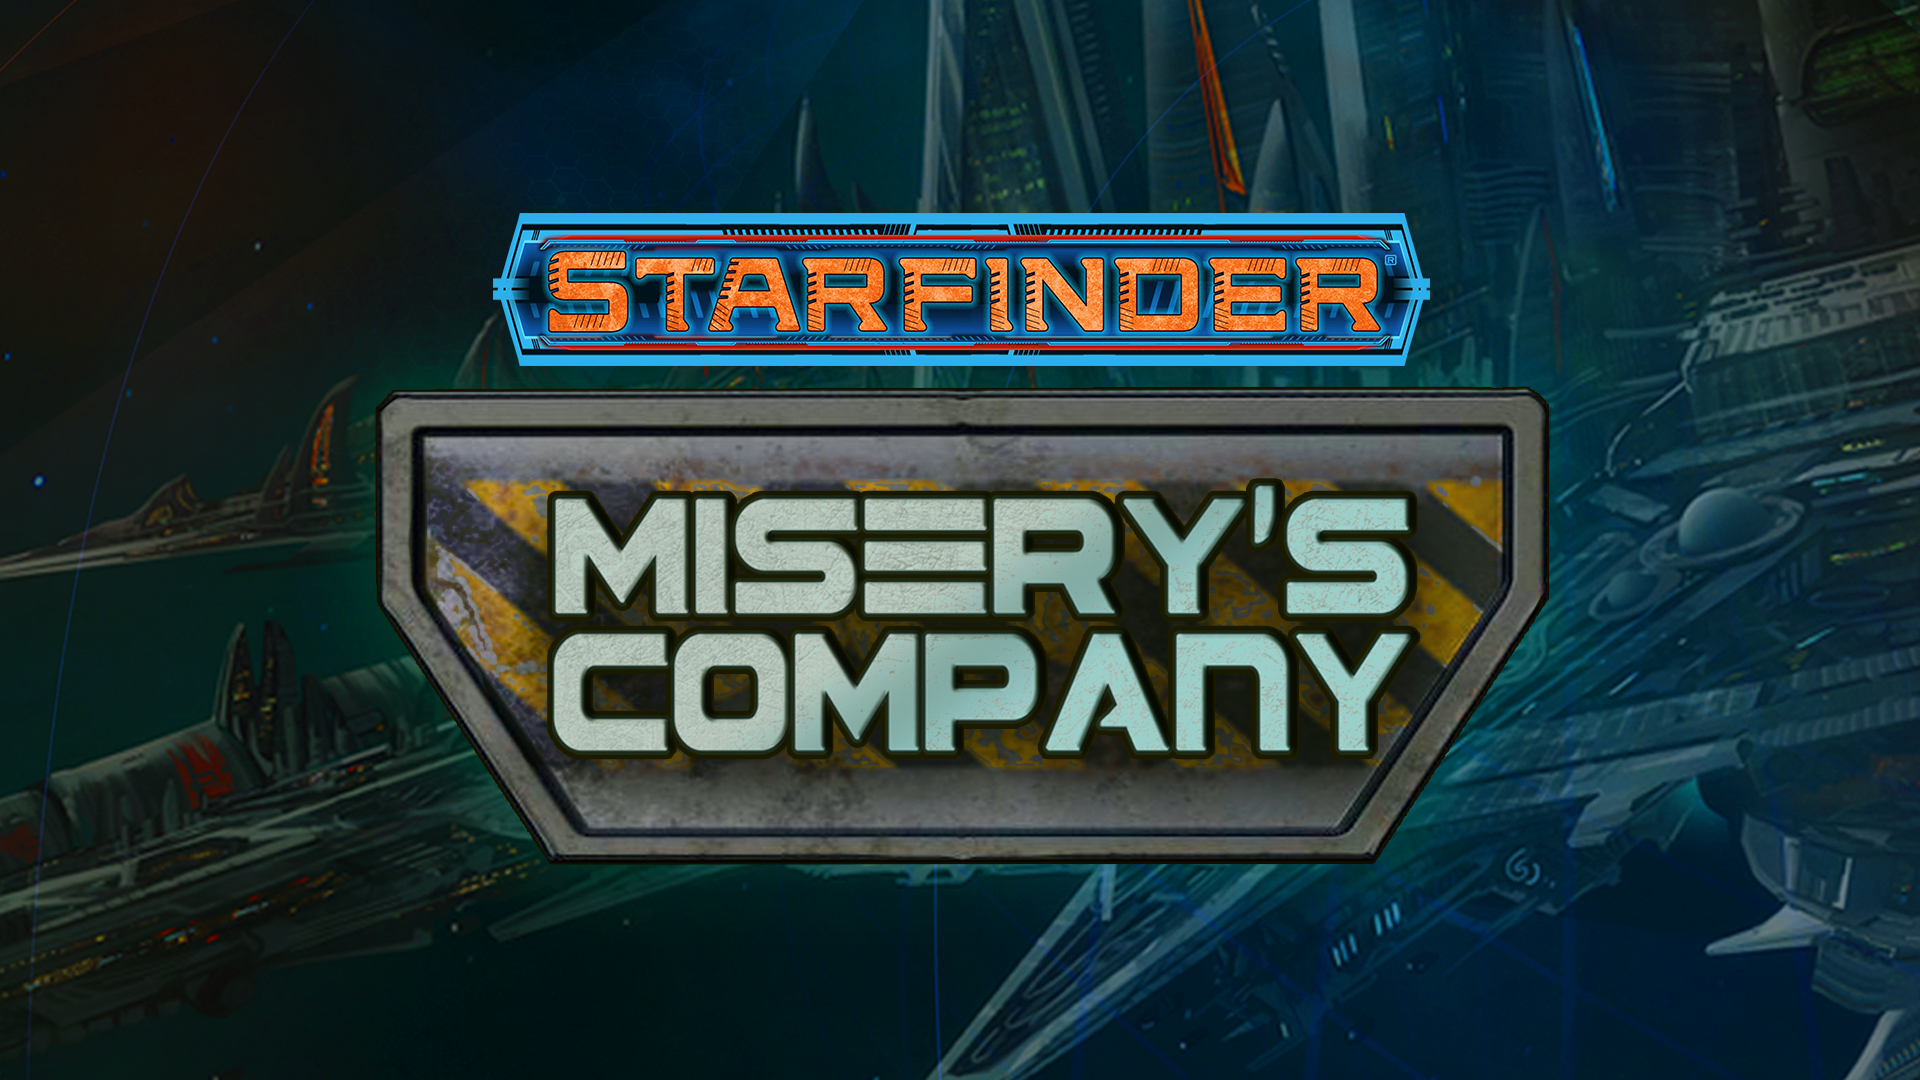 Misery's Company Web Fiction Title Treatment. Metal textured text over a space background